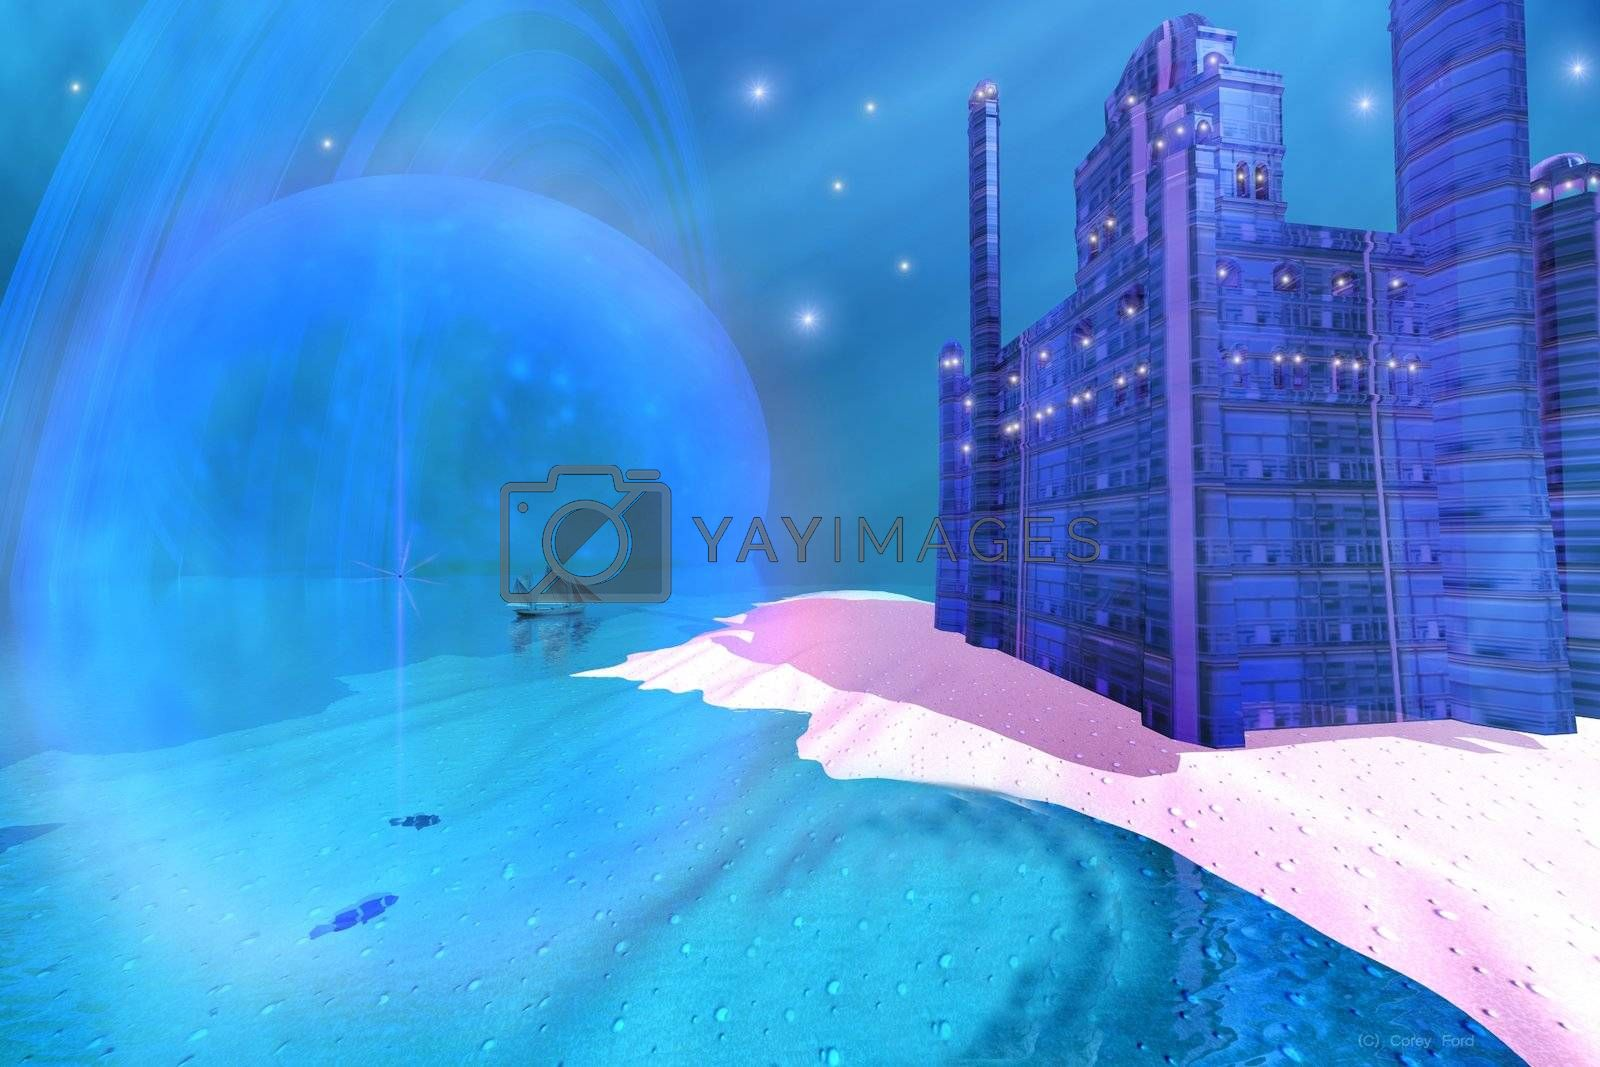 Royalty free image of BLUE  MANSIONS by Catmando